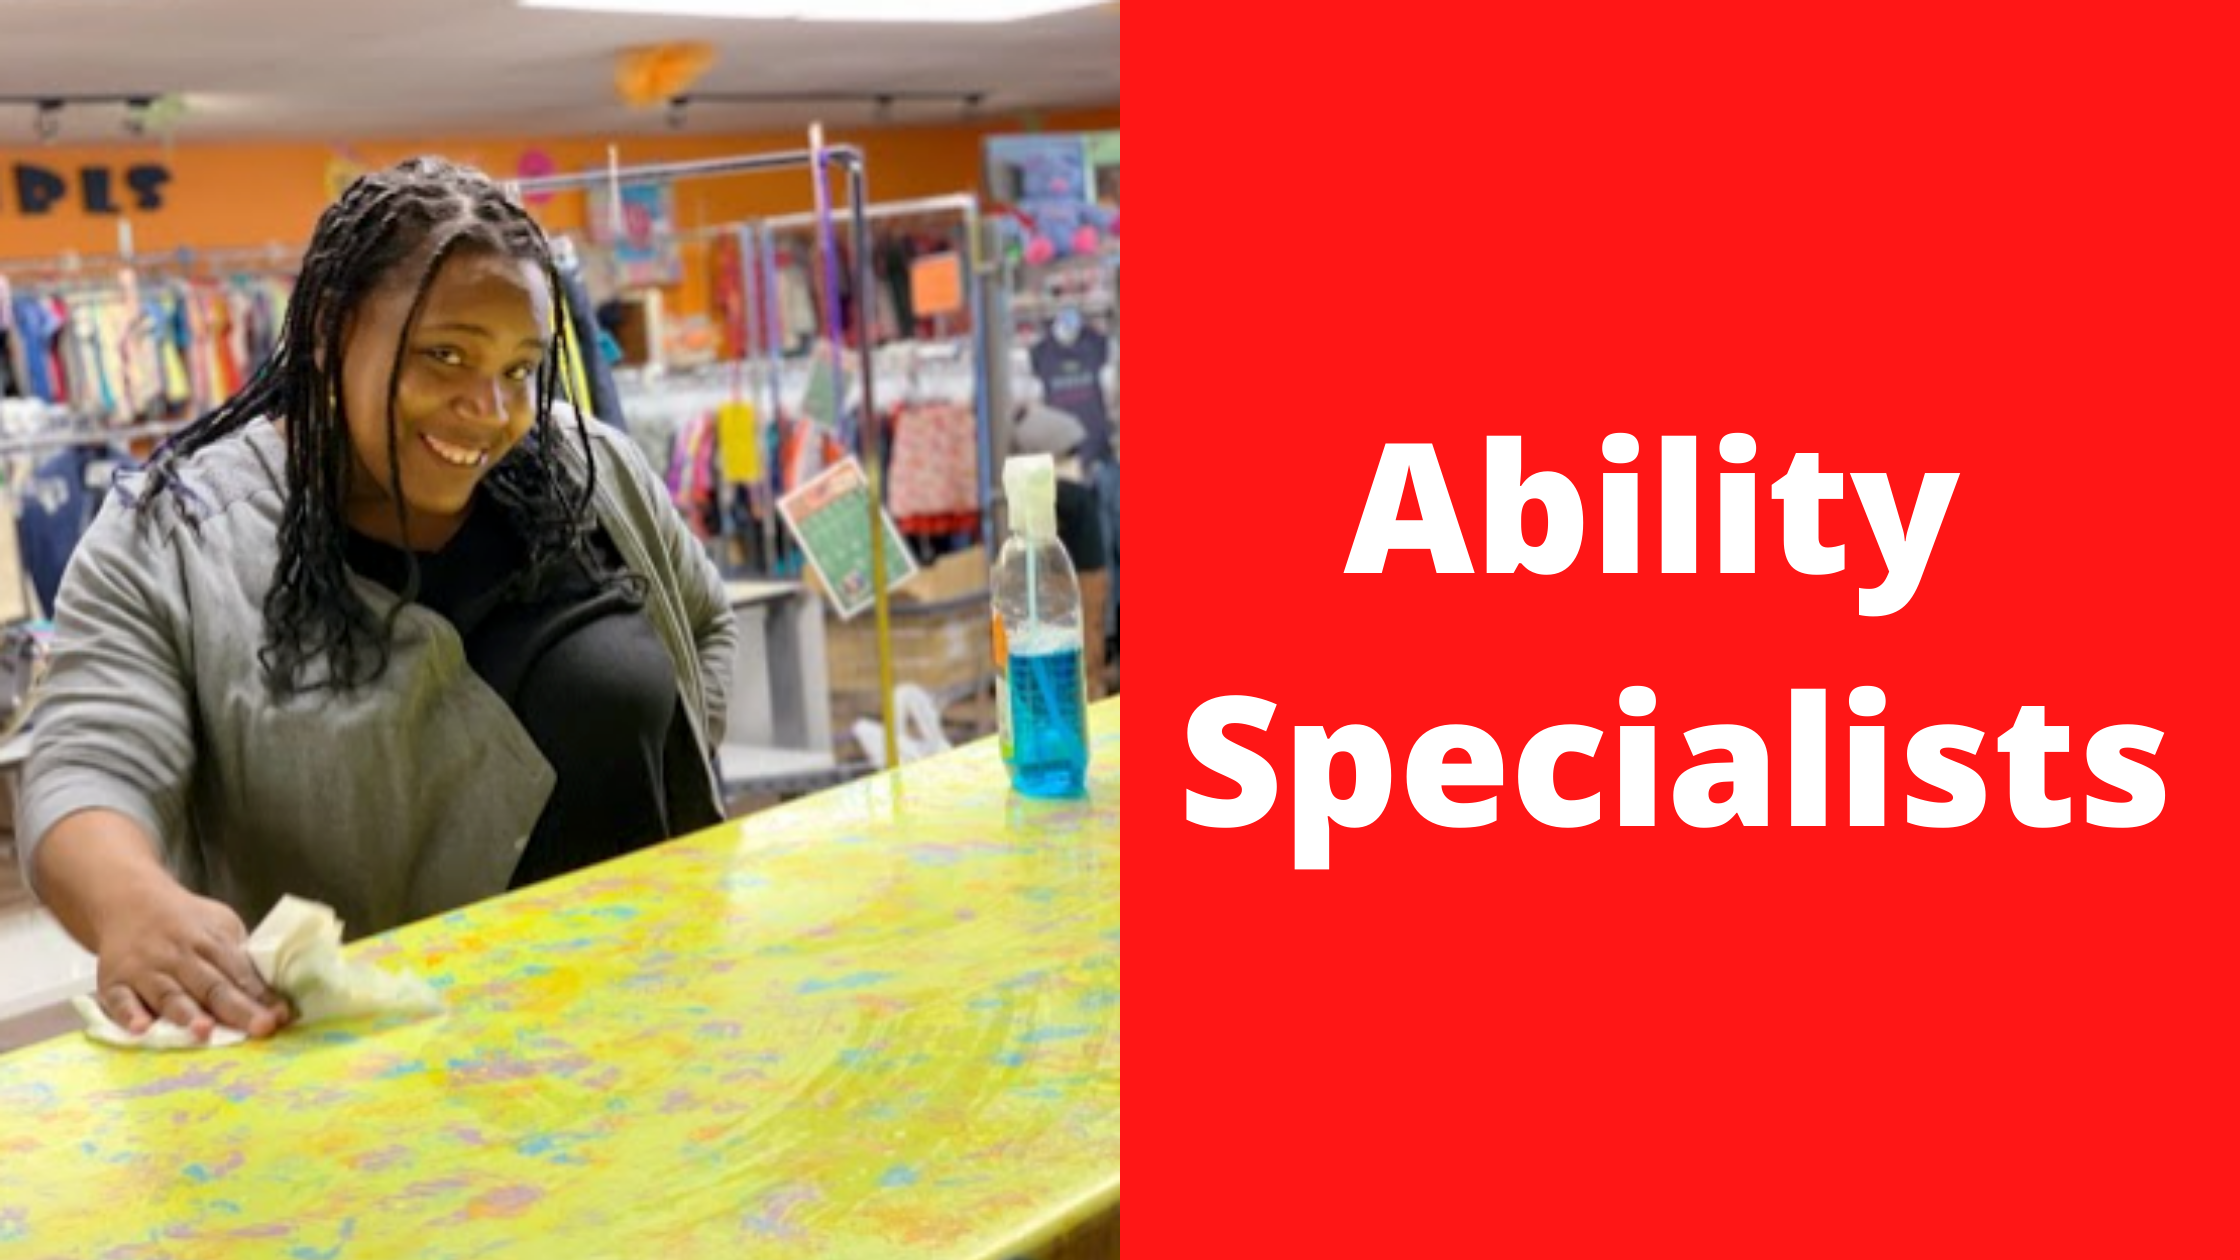 Ability Specialists